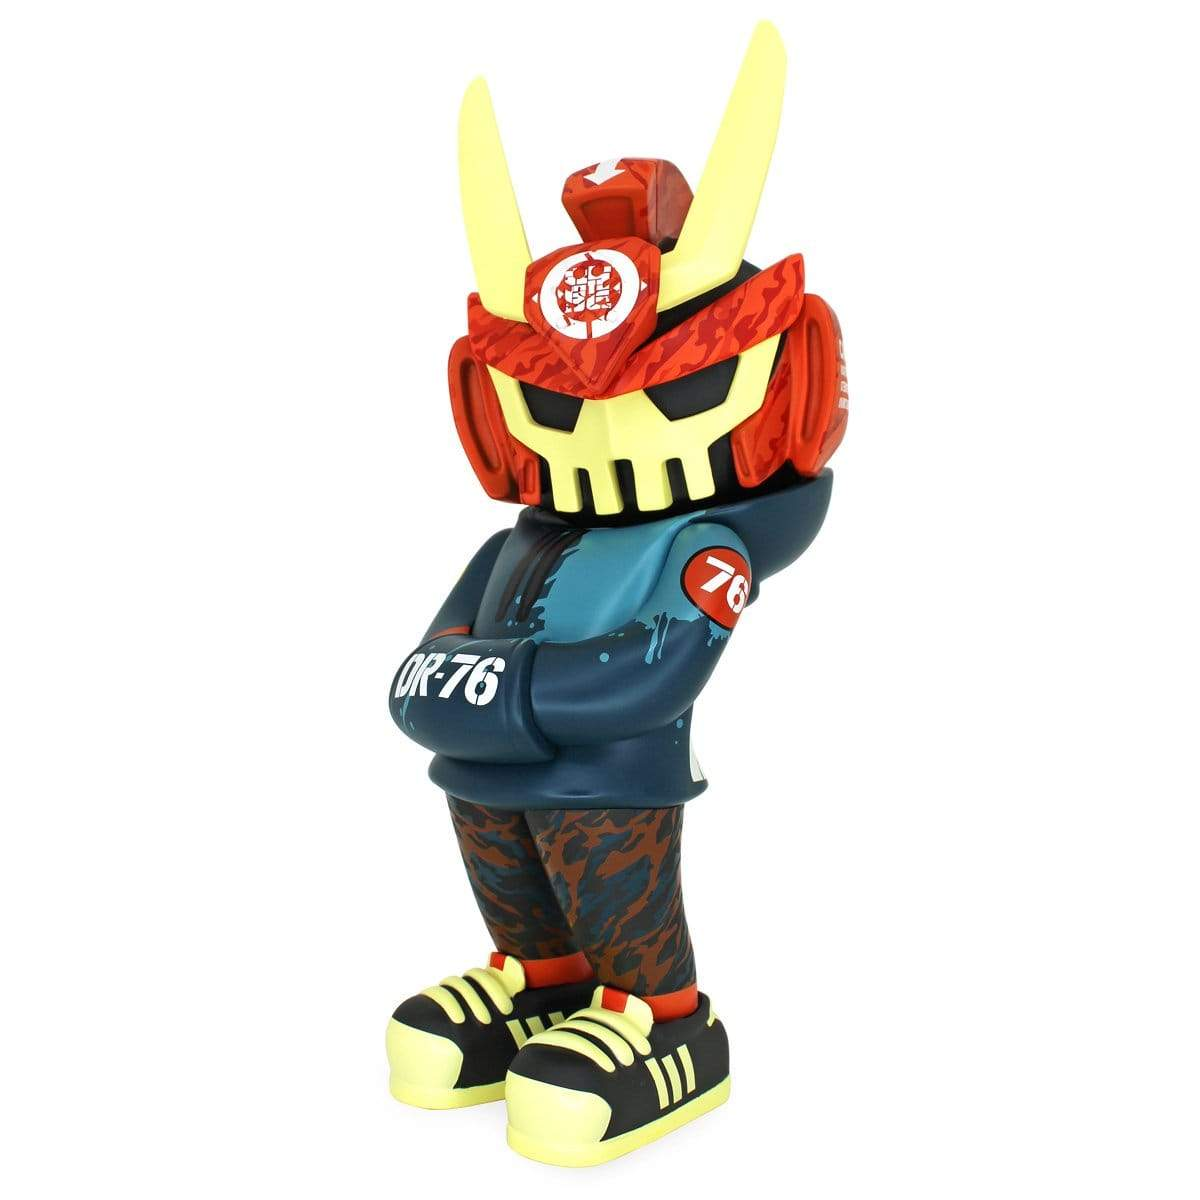 "DR76 MEGA TEQ63 12"" Vinyl Figure by Dragon76 x Quiccs x Martian Toys Quiccs MegaTEQ63 Martian Toys"